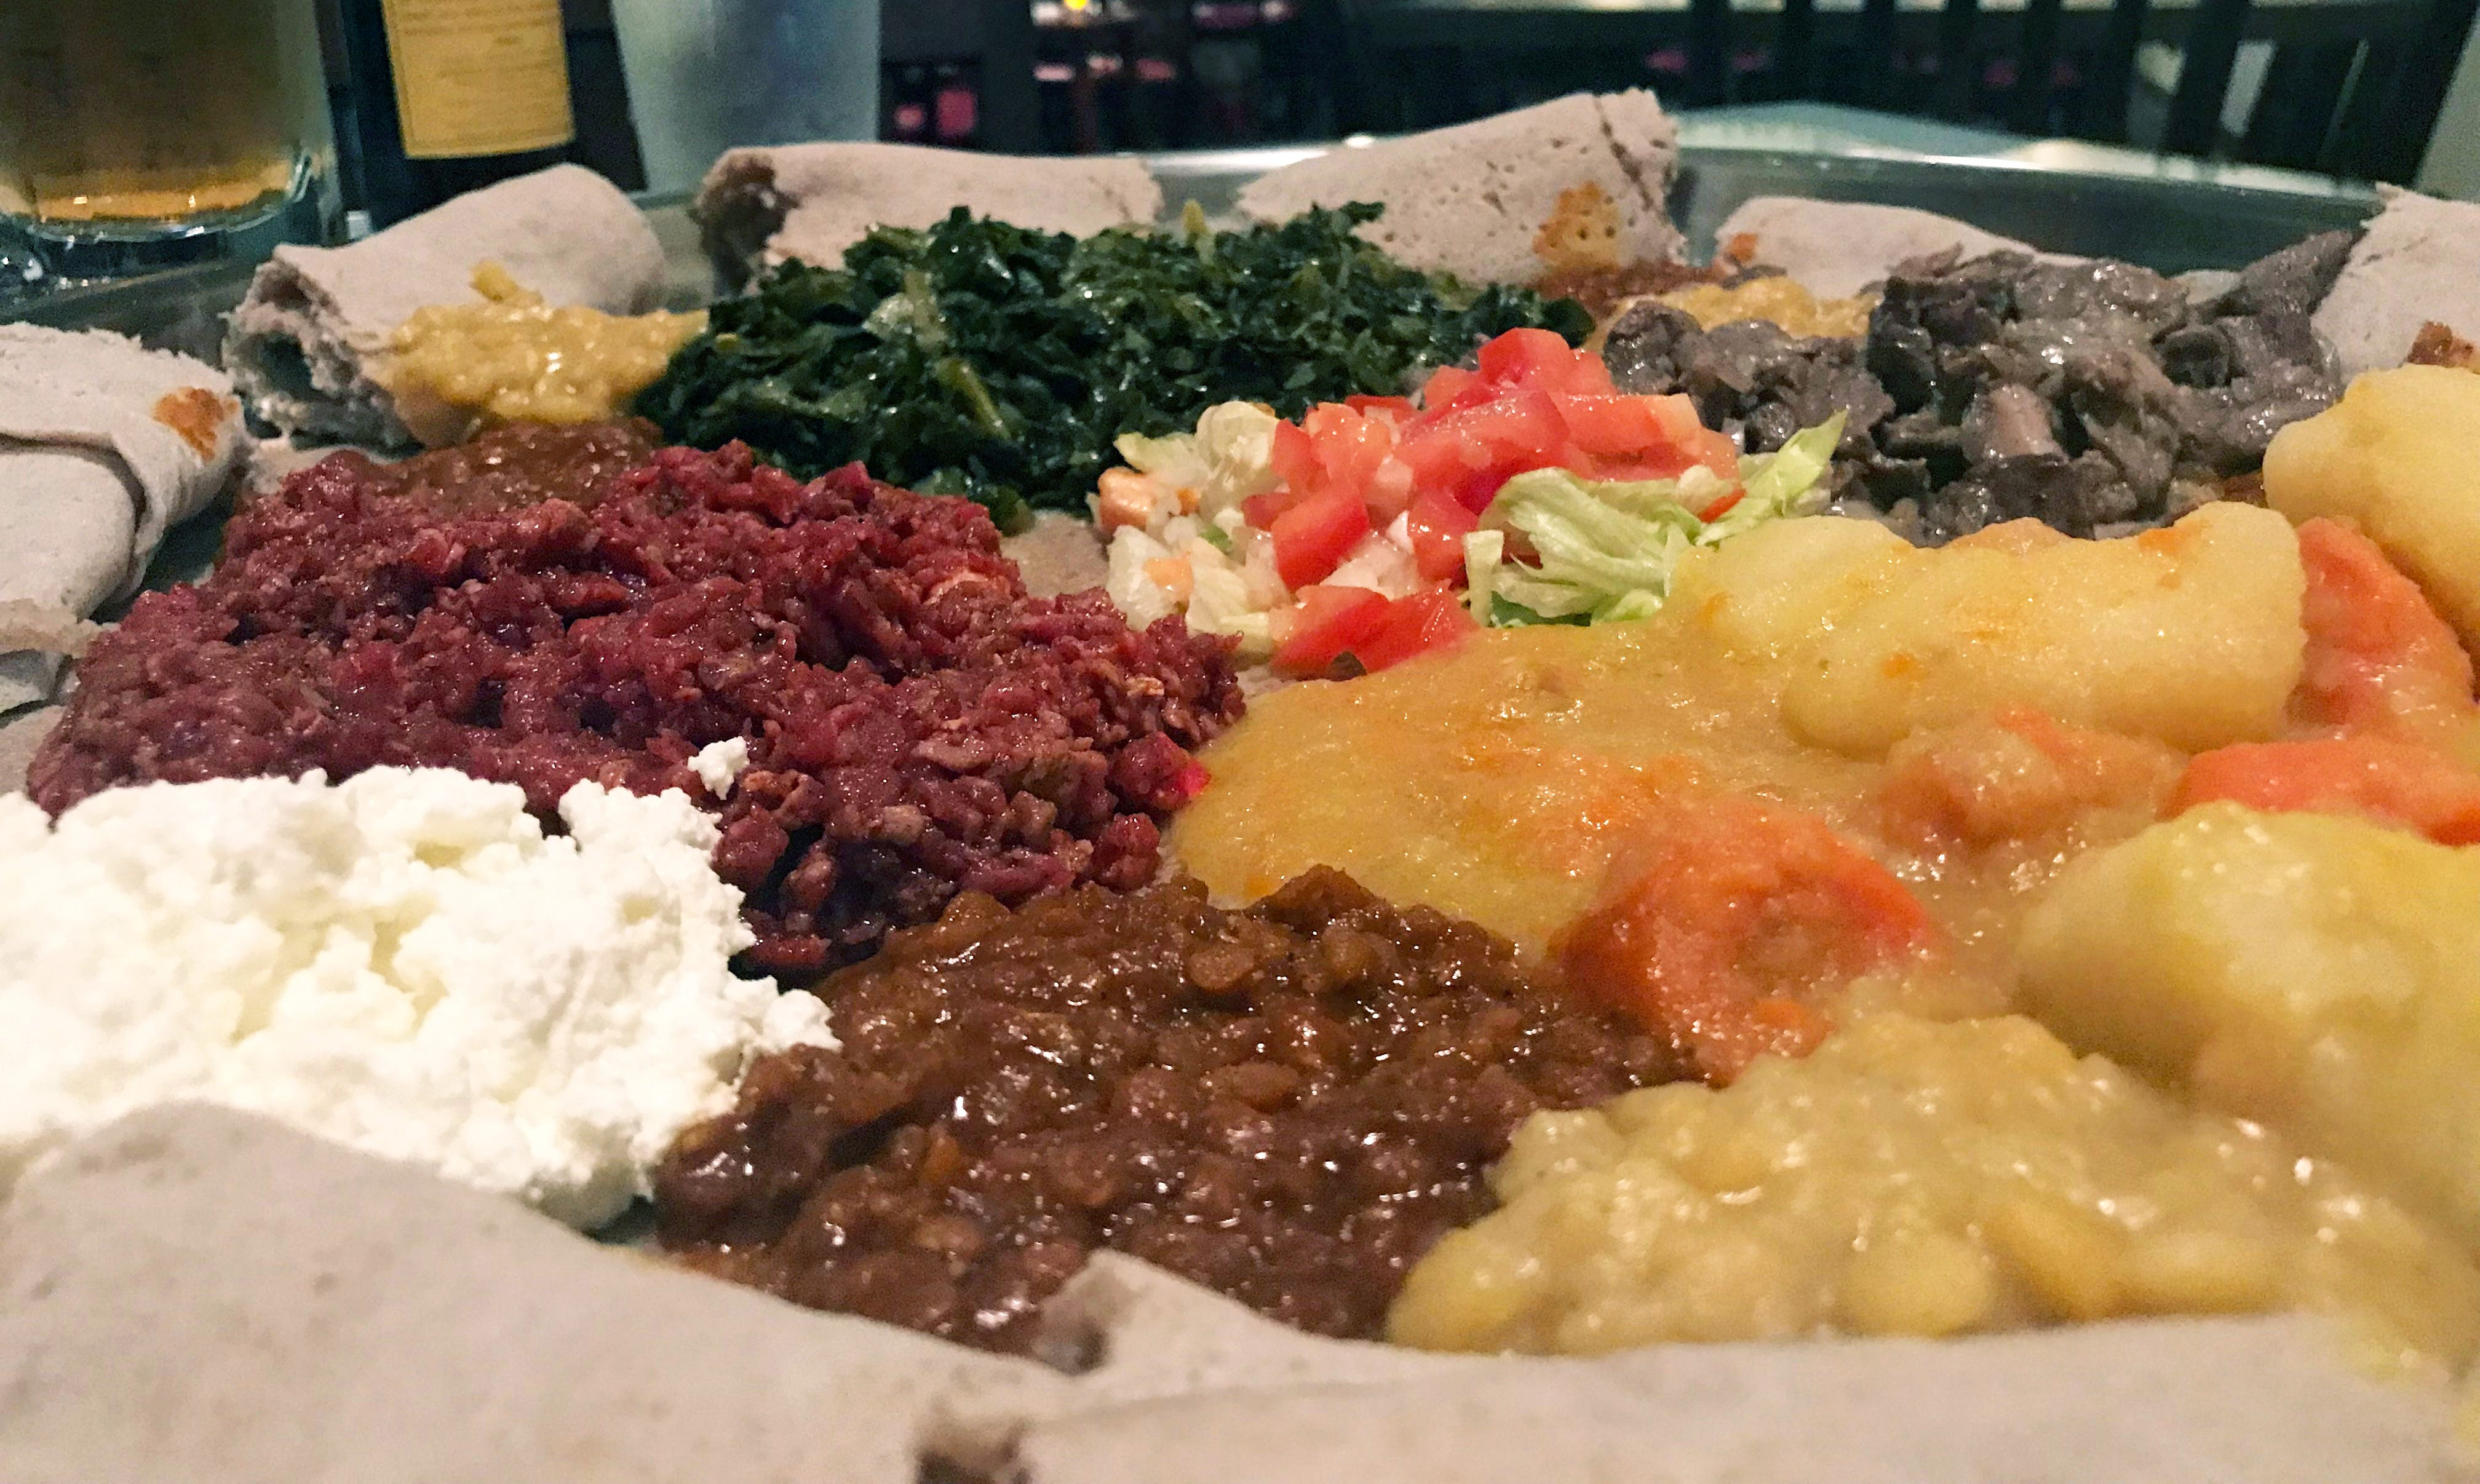 Stews and sautés are served on injera, a sourdough flatbread, at Ethiopian Cottage, 1824 N. Farwell Ave. The menu has many meat and meatless options.